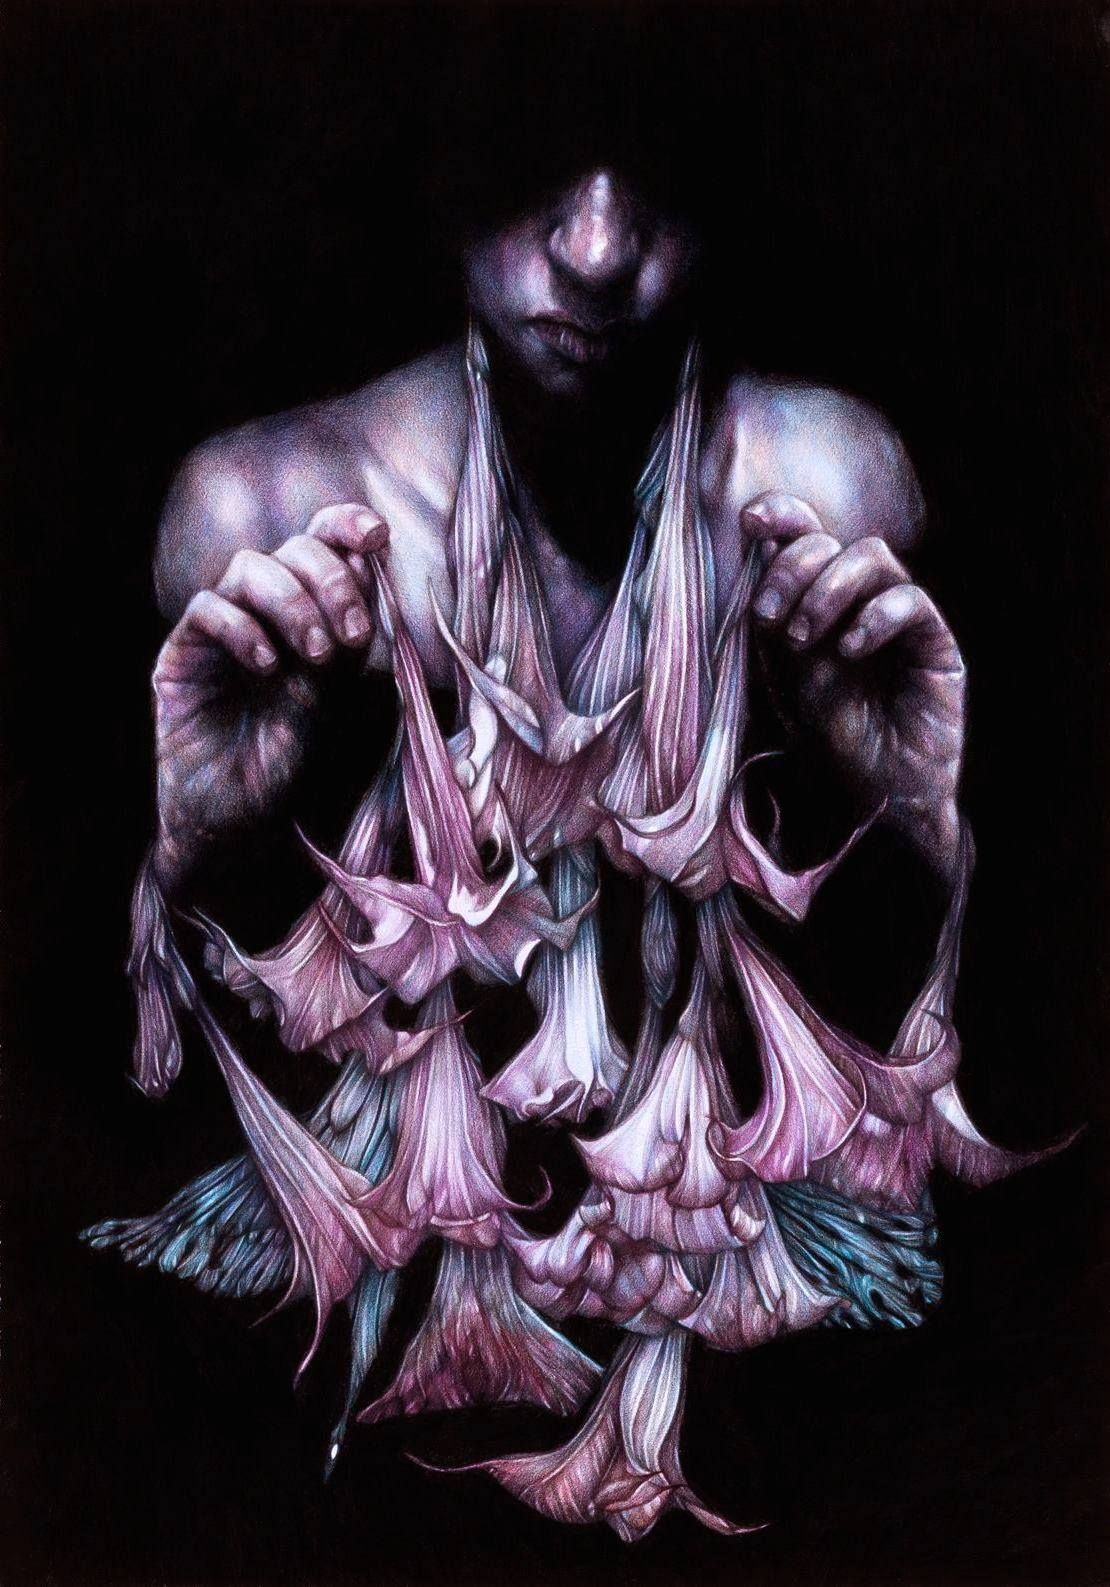 """""""The Necromancer"""" - Pencil drawing by Marco Mazzoni"""